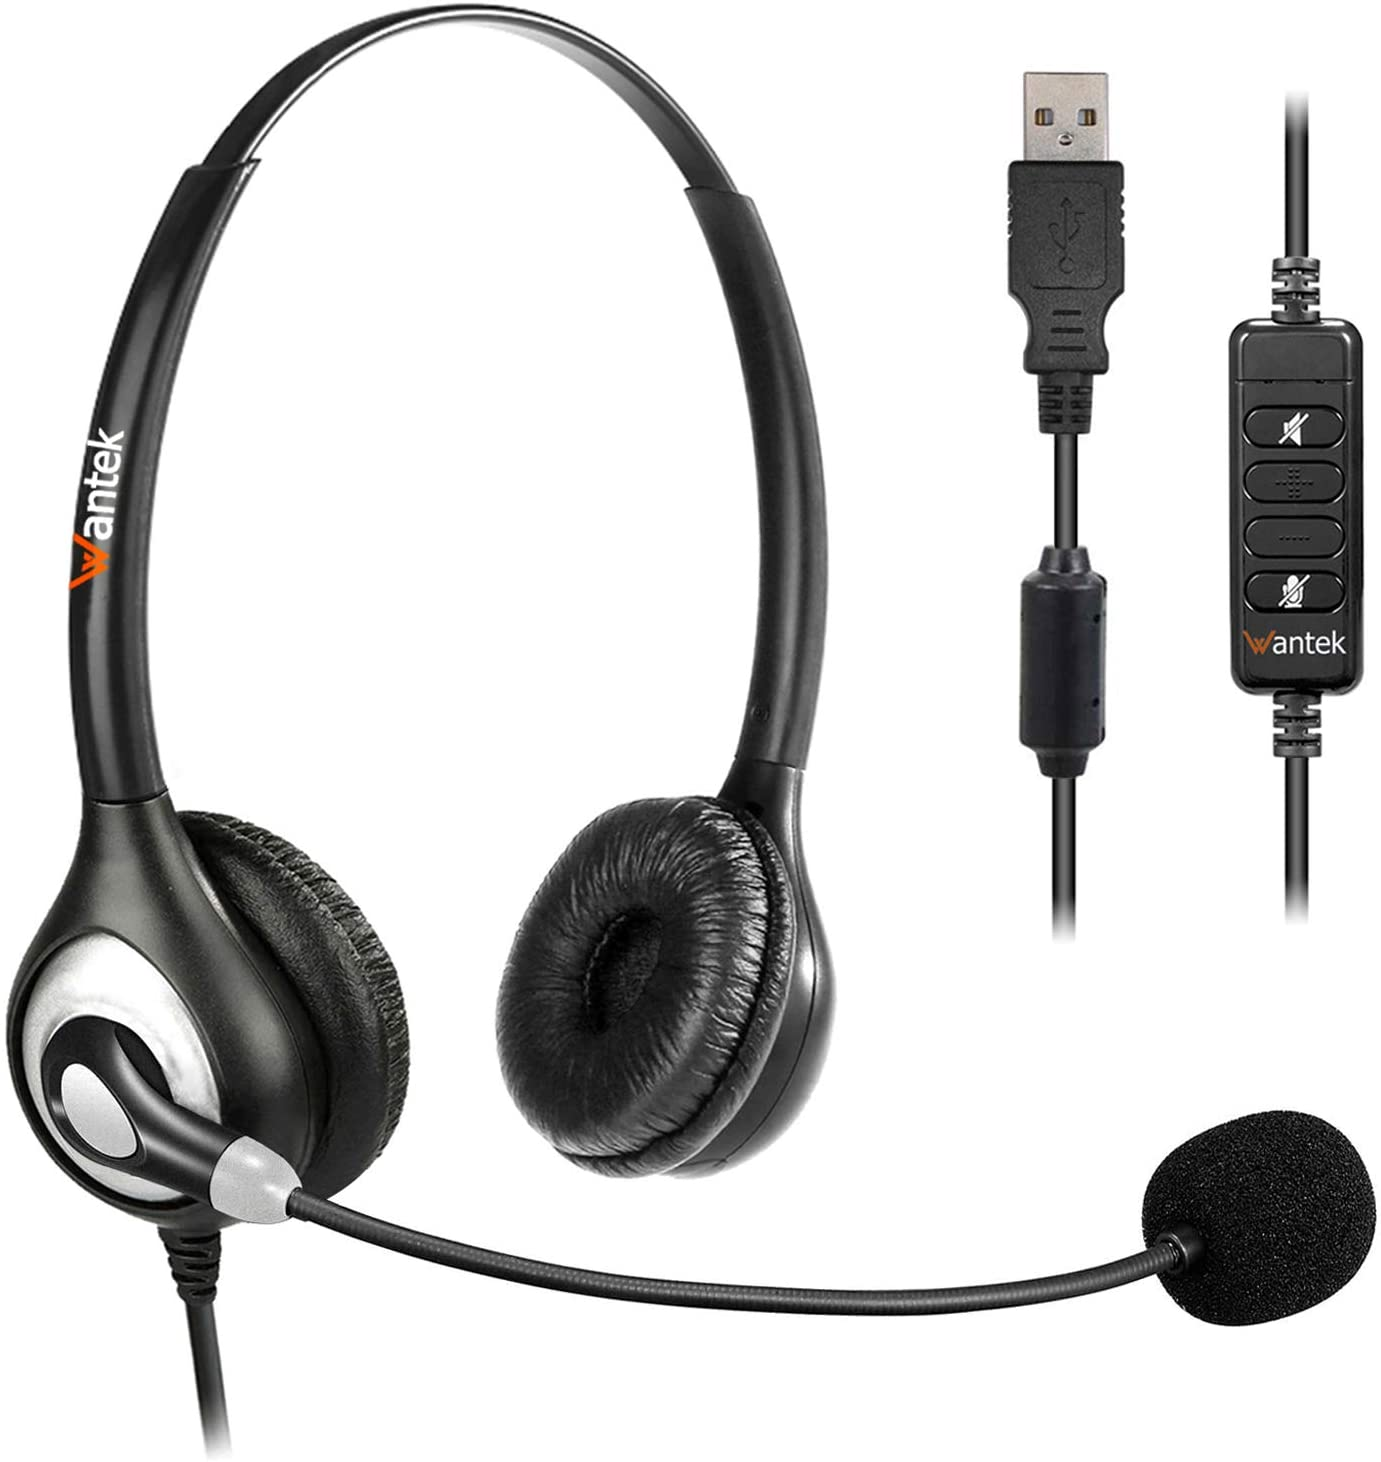 USB Headset with Microphone Noise Cancelling & in-line Controls, Wantek Office Computer Headphones for Laptop PC Call Center Business Skype Zoom SoftPhone, Clear Chat, Ultra Comfort